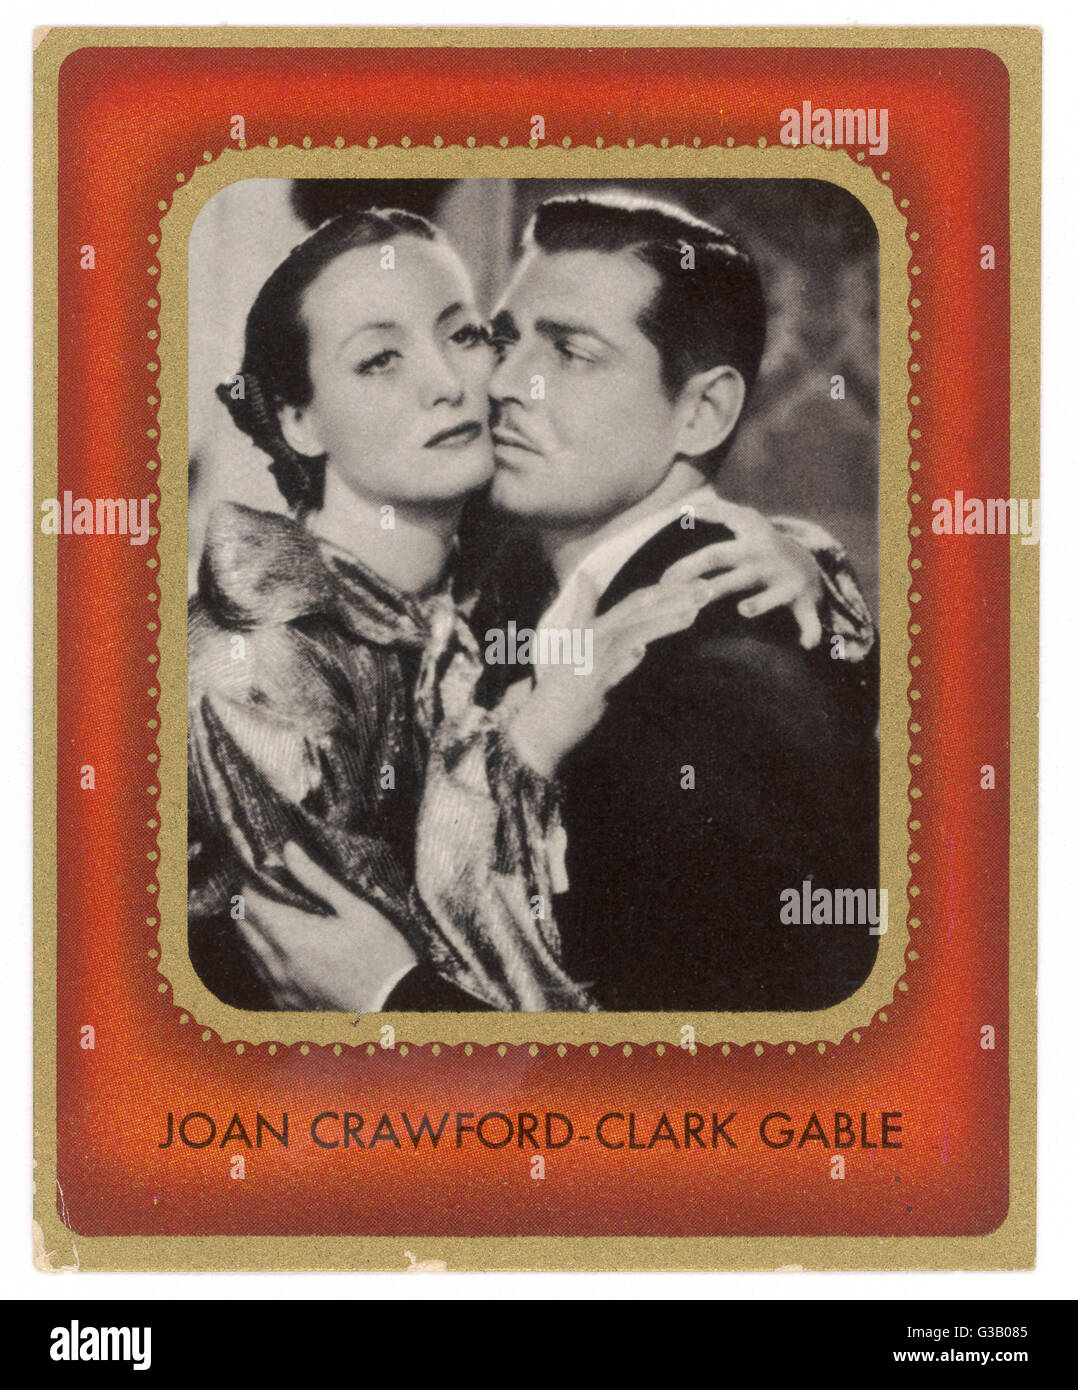 CLARK GABLE  American film actor with Joan Crawford       Date: 1901 - 1960 - Stock Image